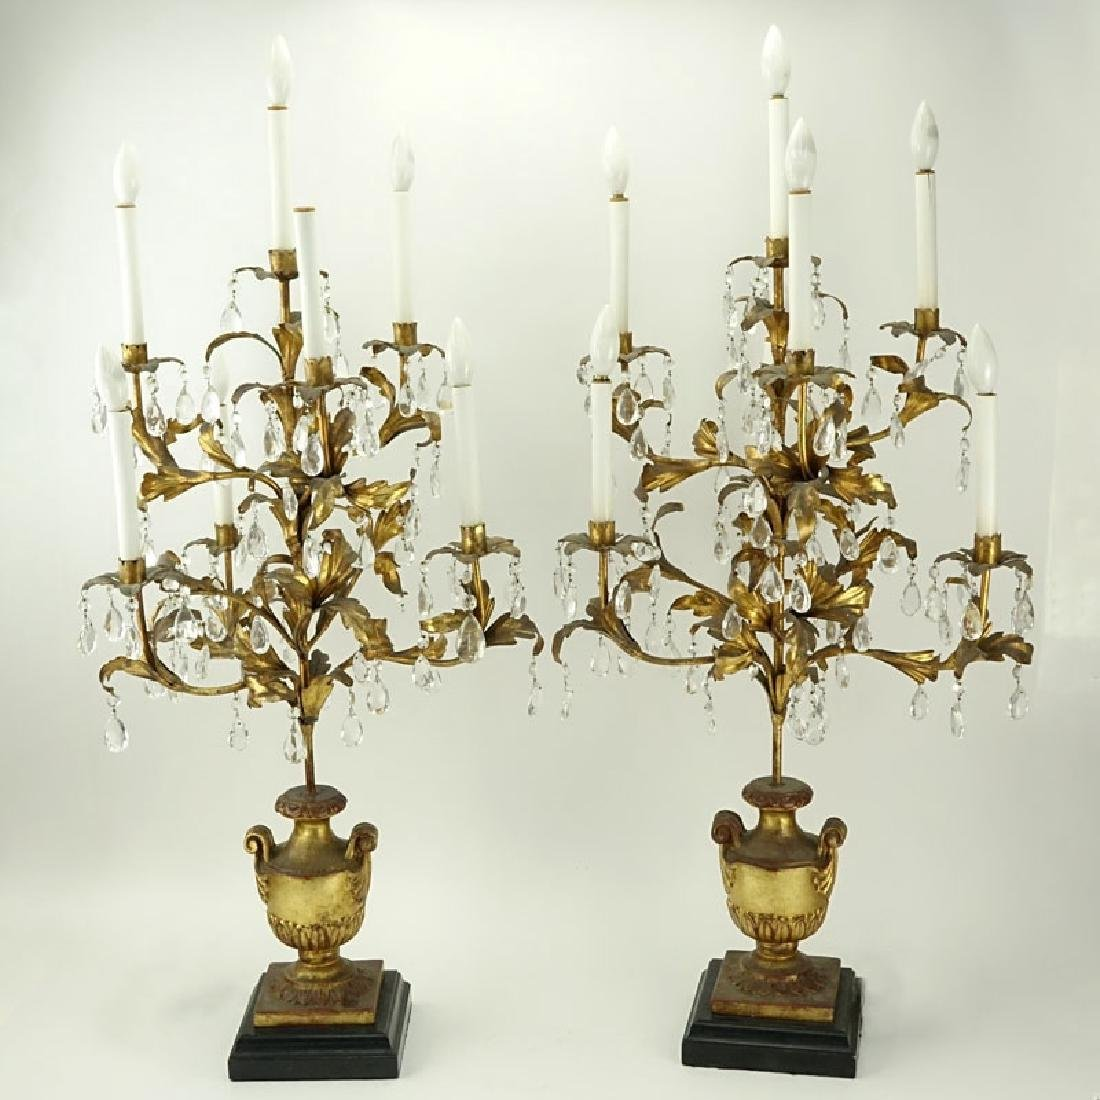 Pair of Gilt Carved Wood and Tole Candelabras Lamps